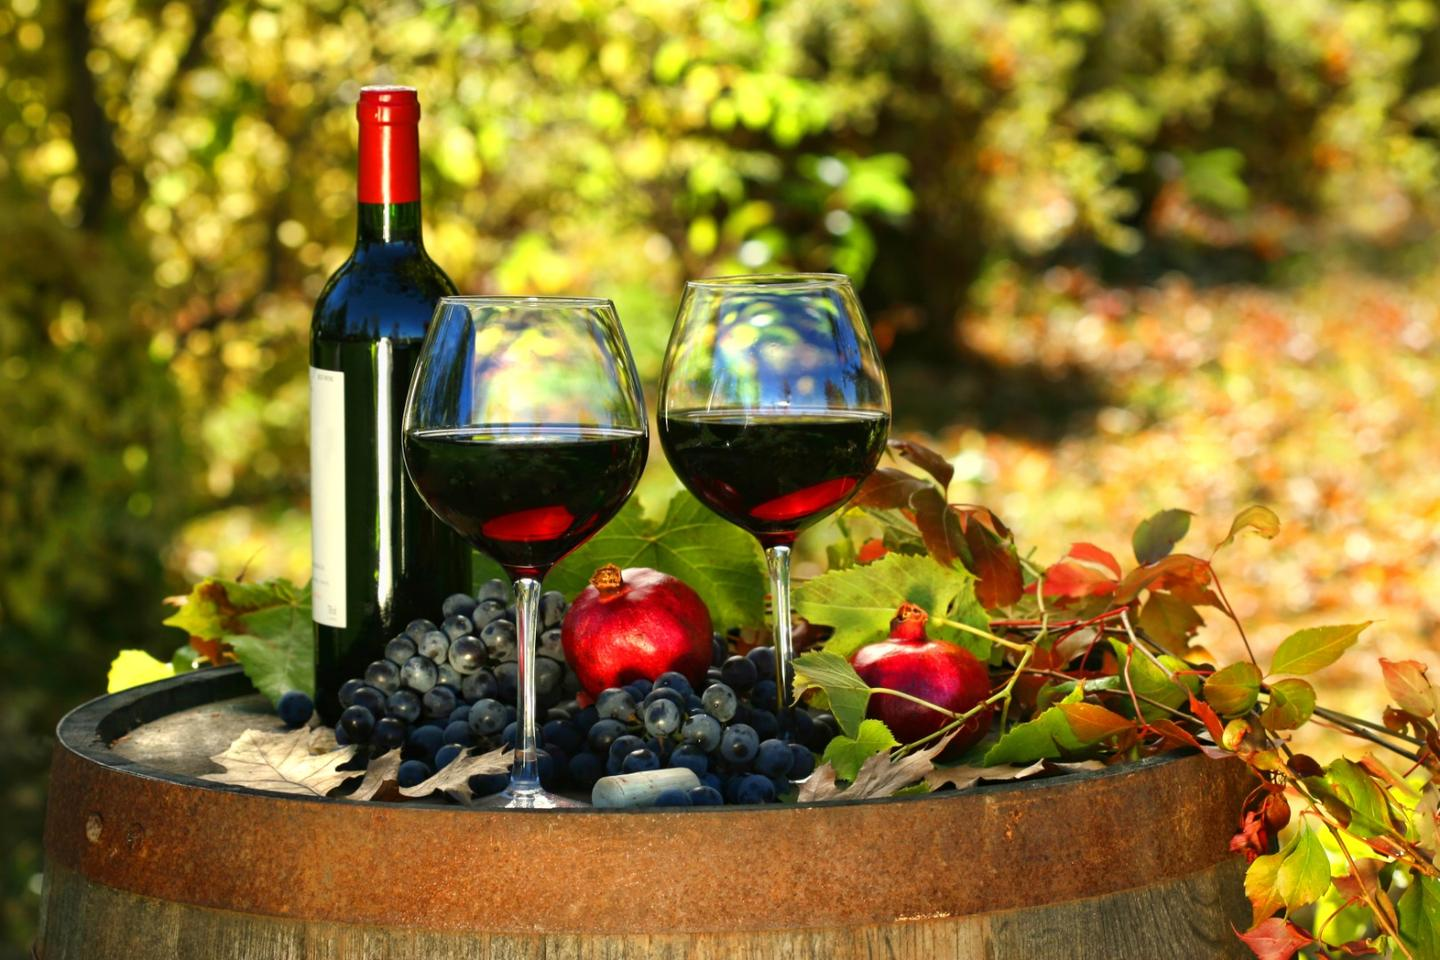 Resveratrol has also been linked to a number of other health benefits